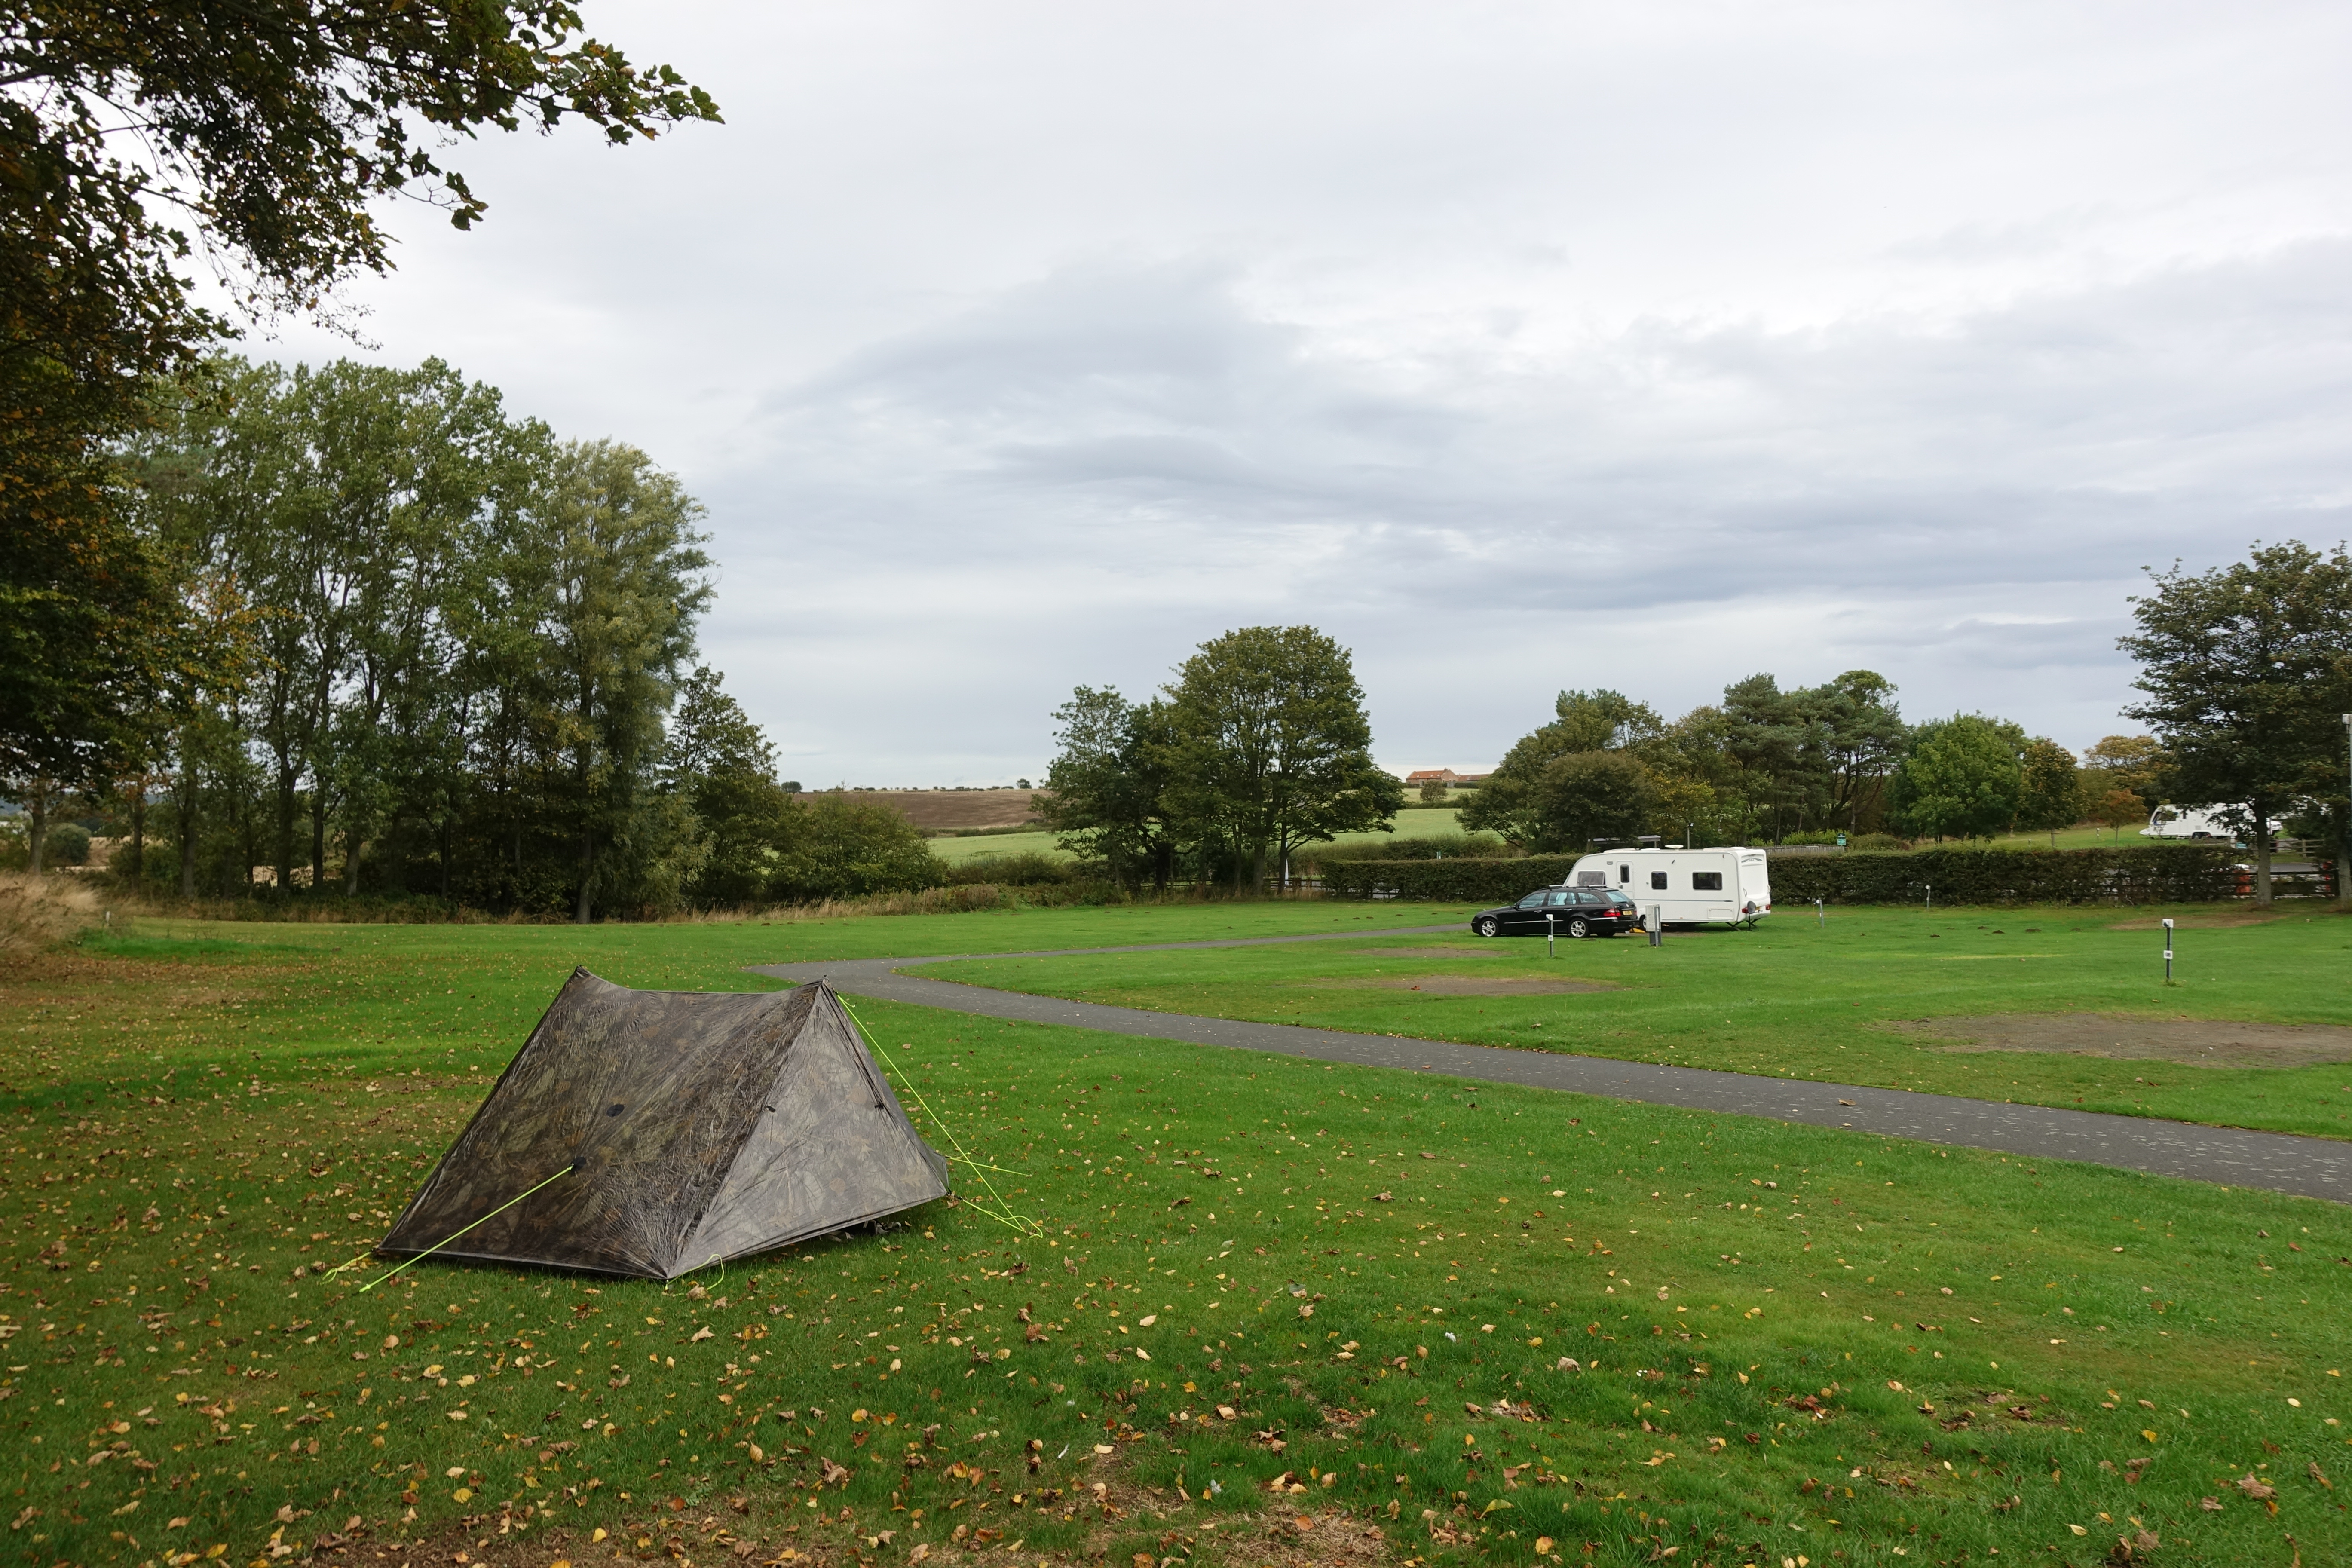 Pitched at Scalby Mills Camping & Caravanning site